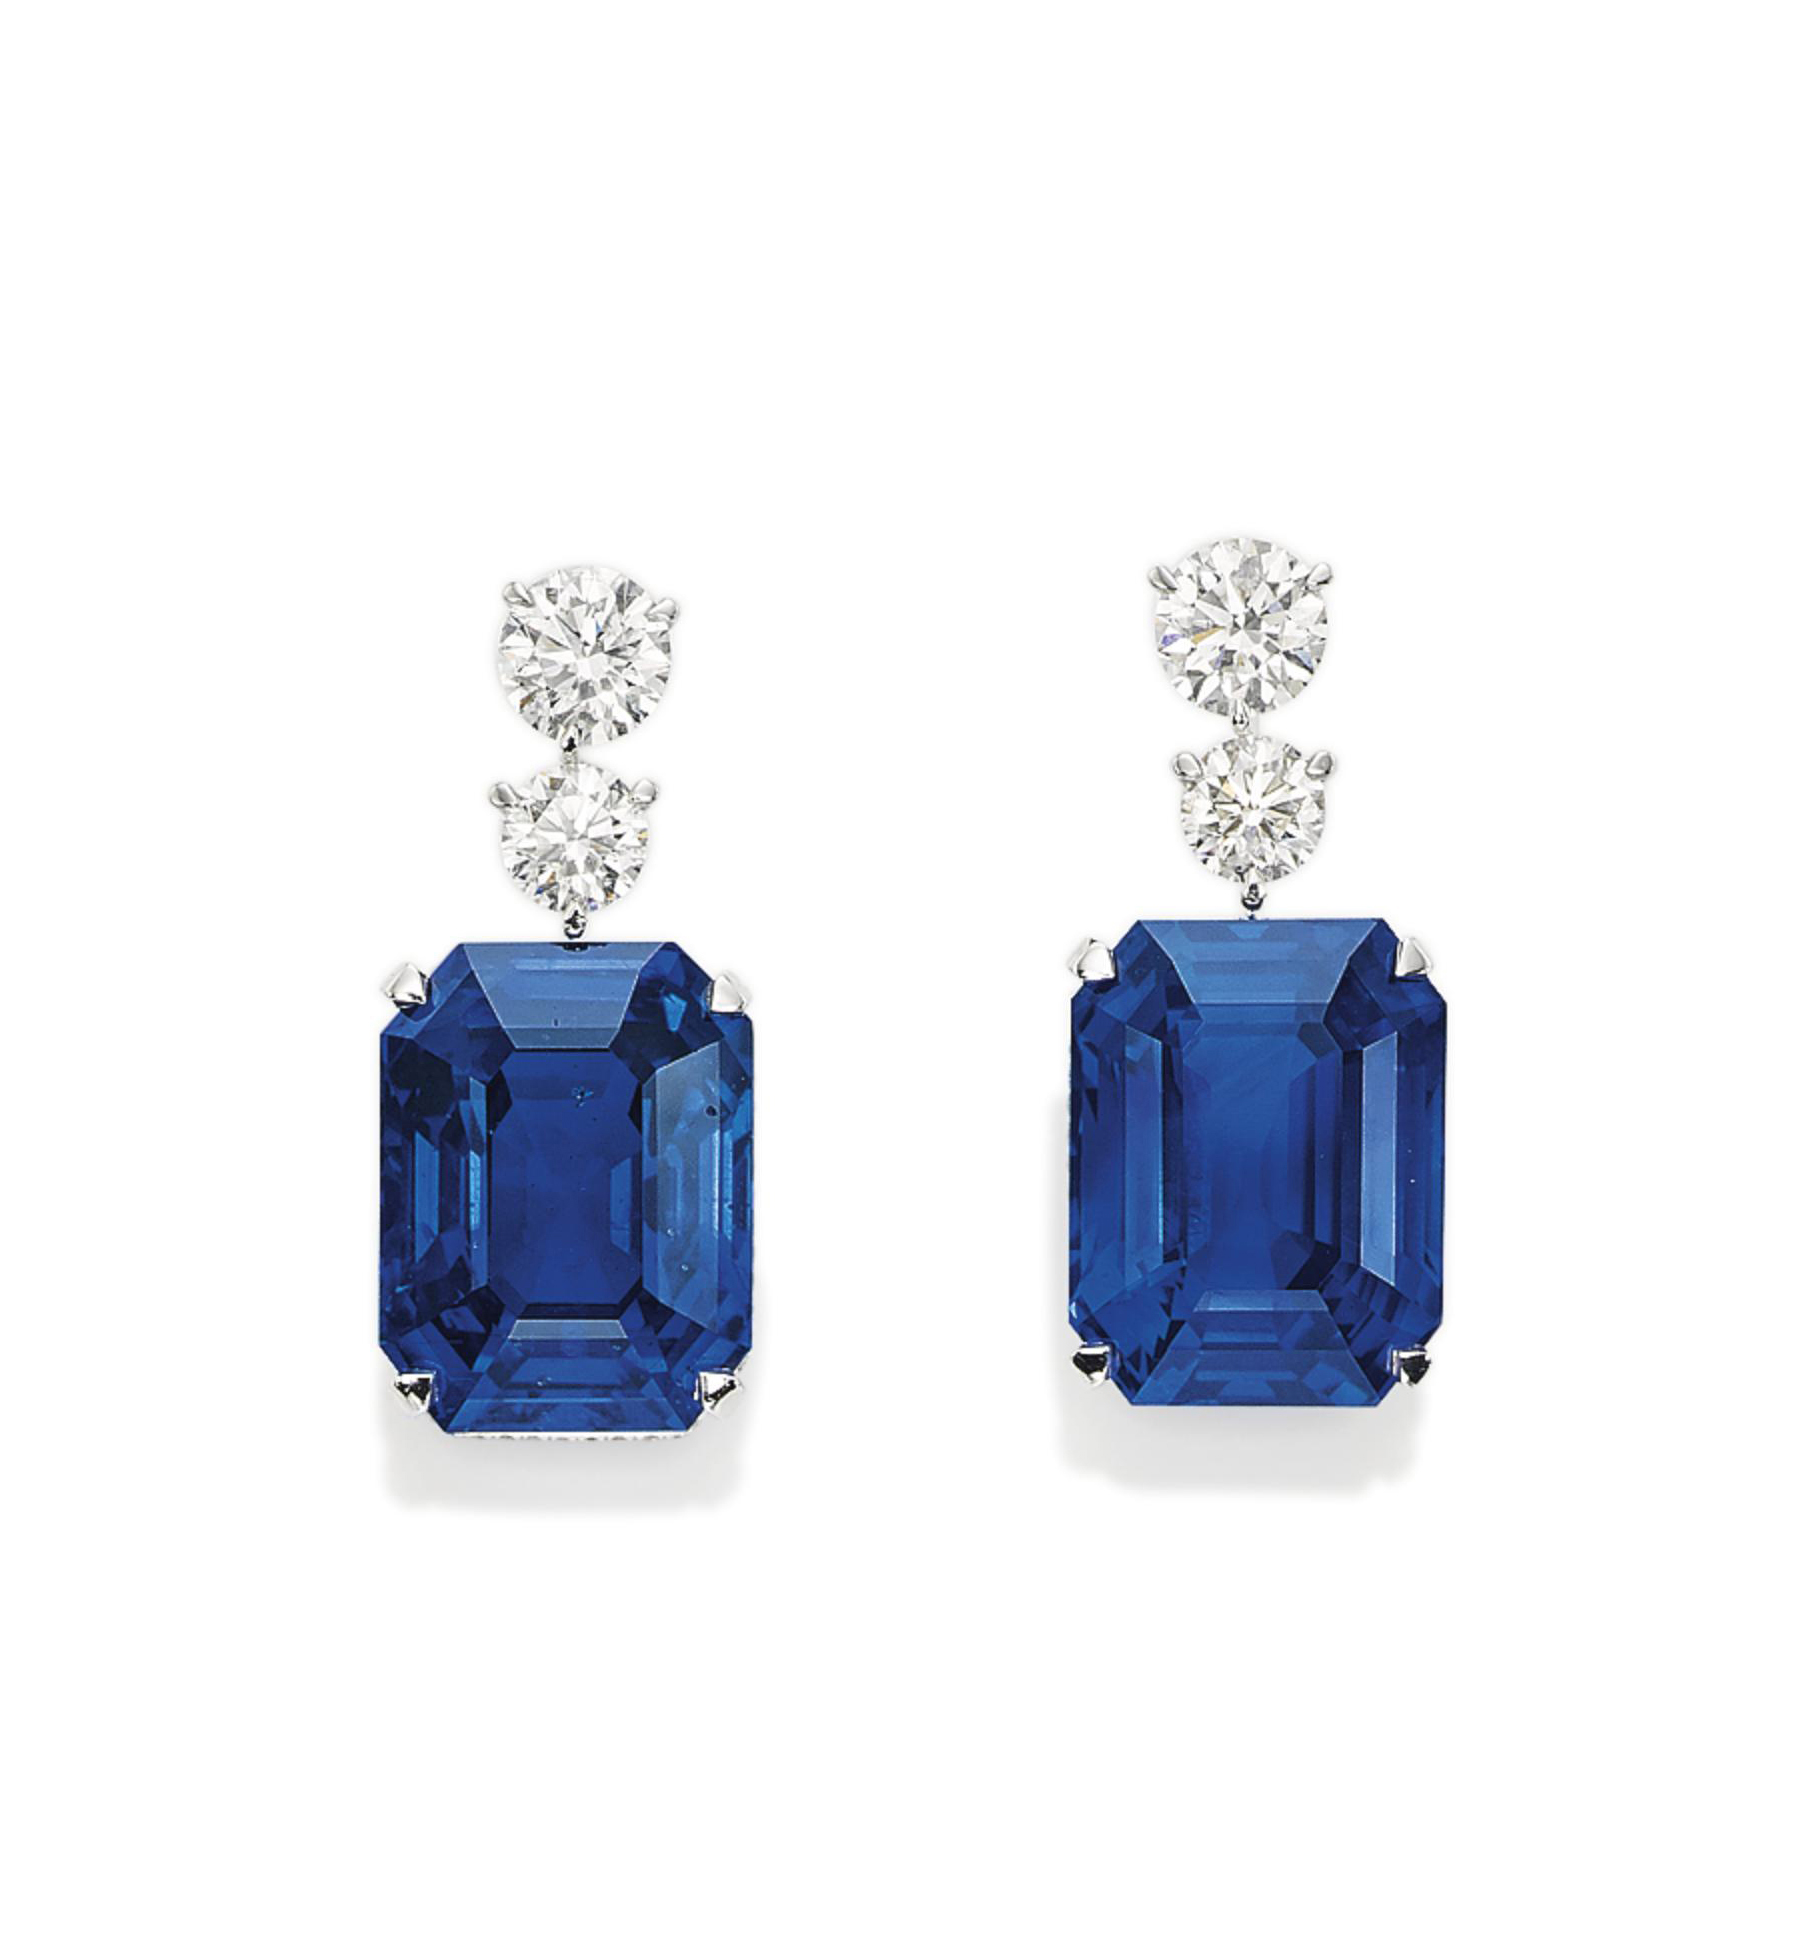 AN EXCEPTIONAL PAIR OF SAPPHIRE AND DIAMOND EARRINGS, BY DAVID MORRIS